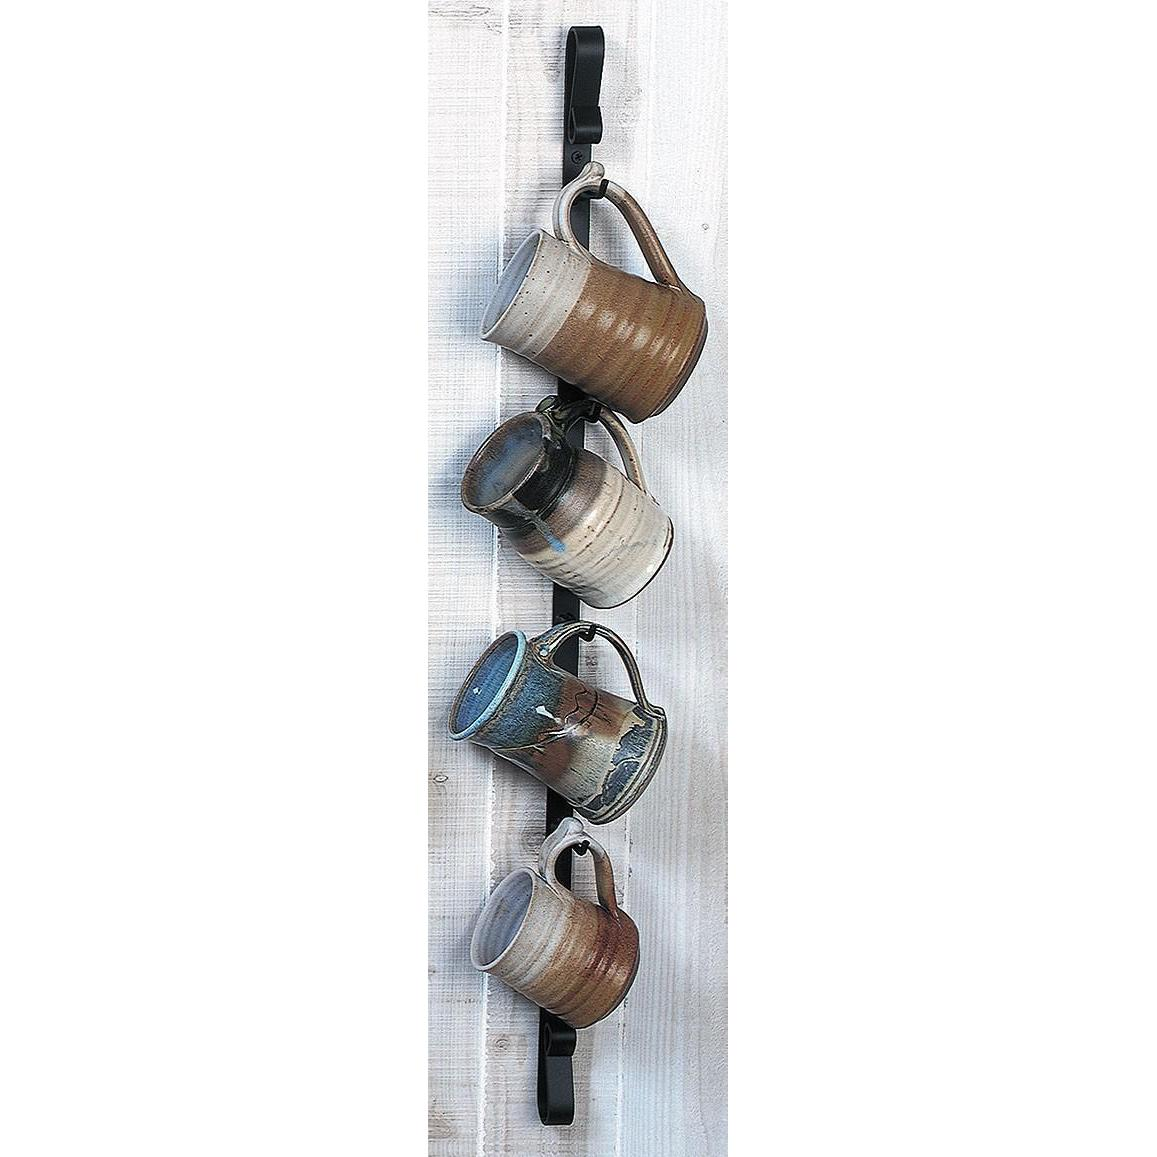 Mug Rack Wall Mountvertical